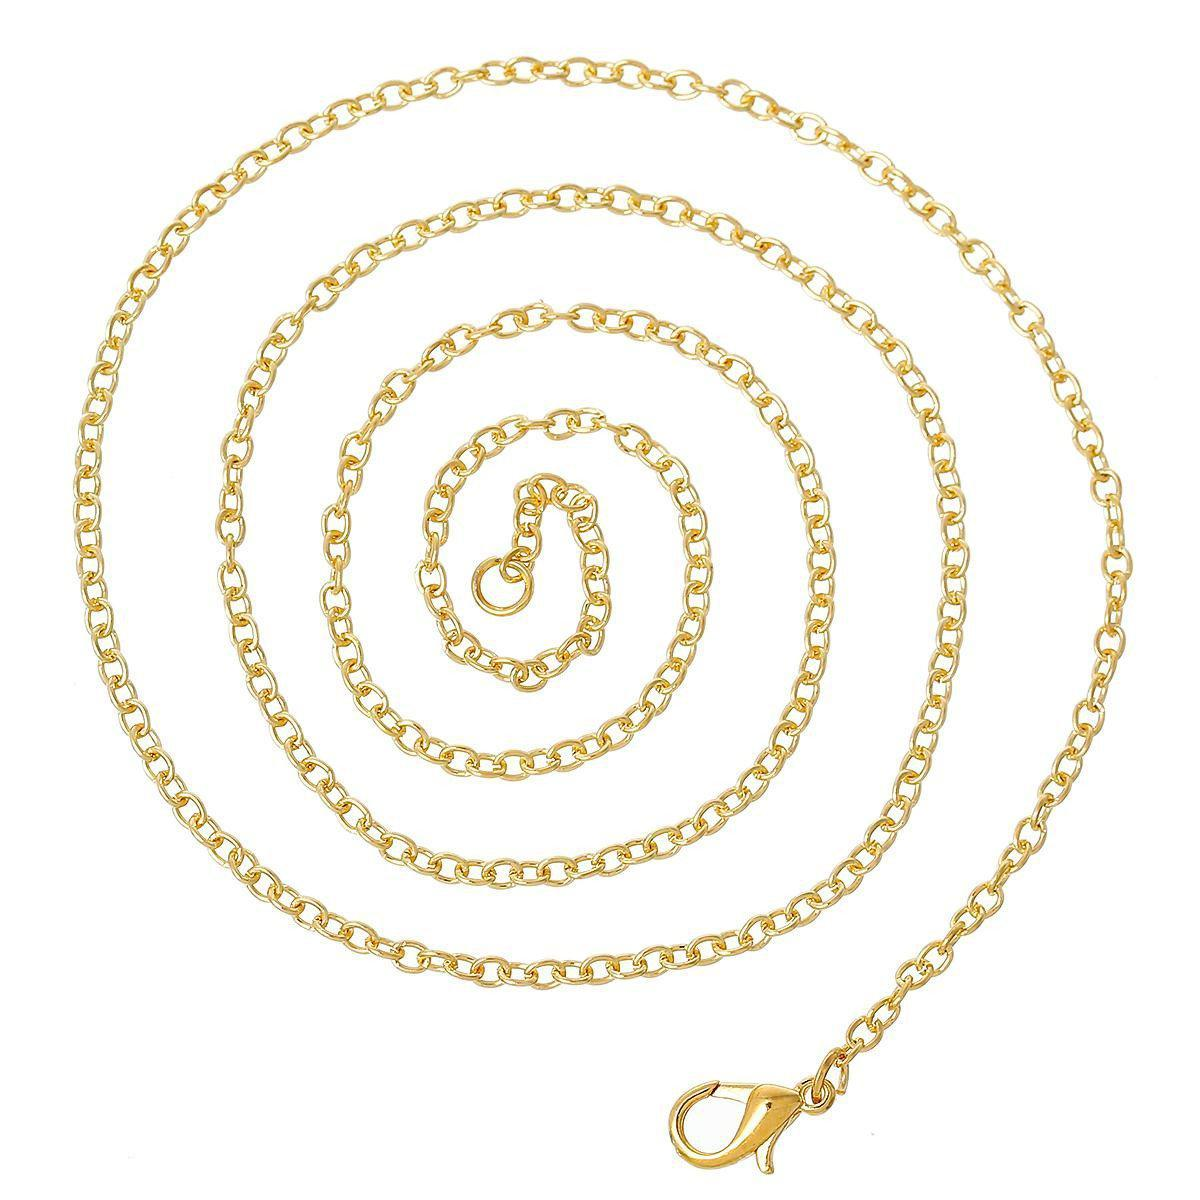 "Jewelry Necklace Oval Gold Plated Cable Chains Lobster Clasp 61cm(24"")long,1 Plate(Approx 12 PCs) 2015 new-NECKLACES-SheSimplyShops"